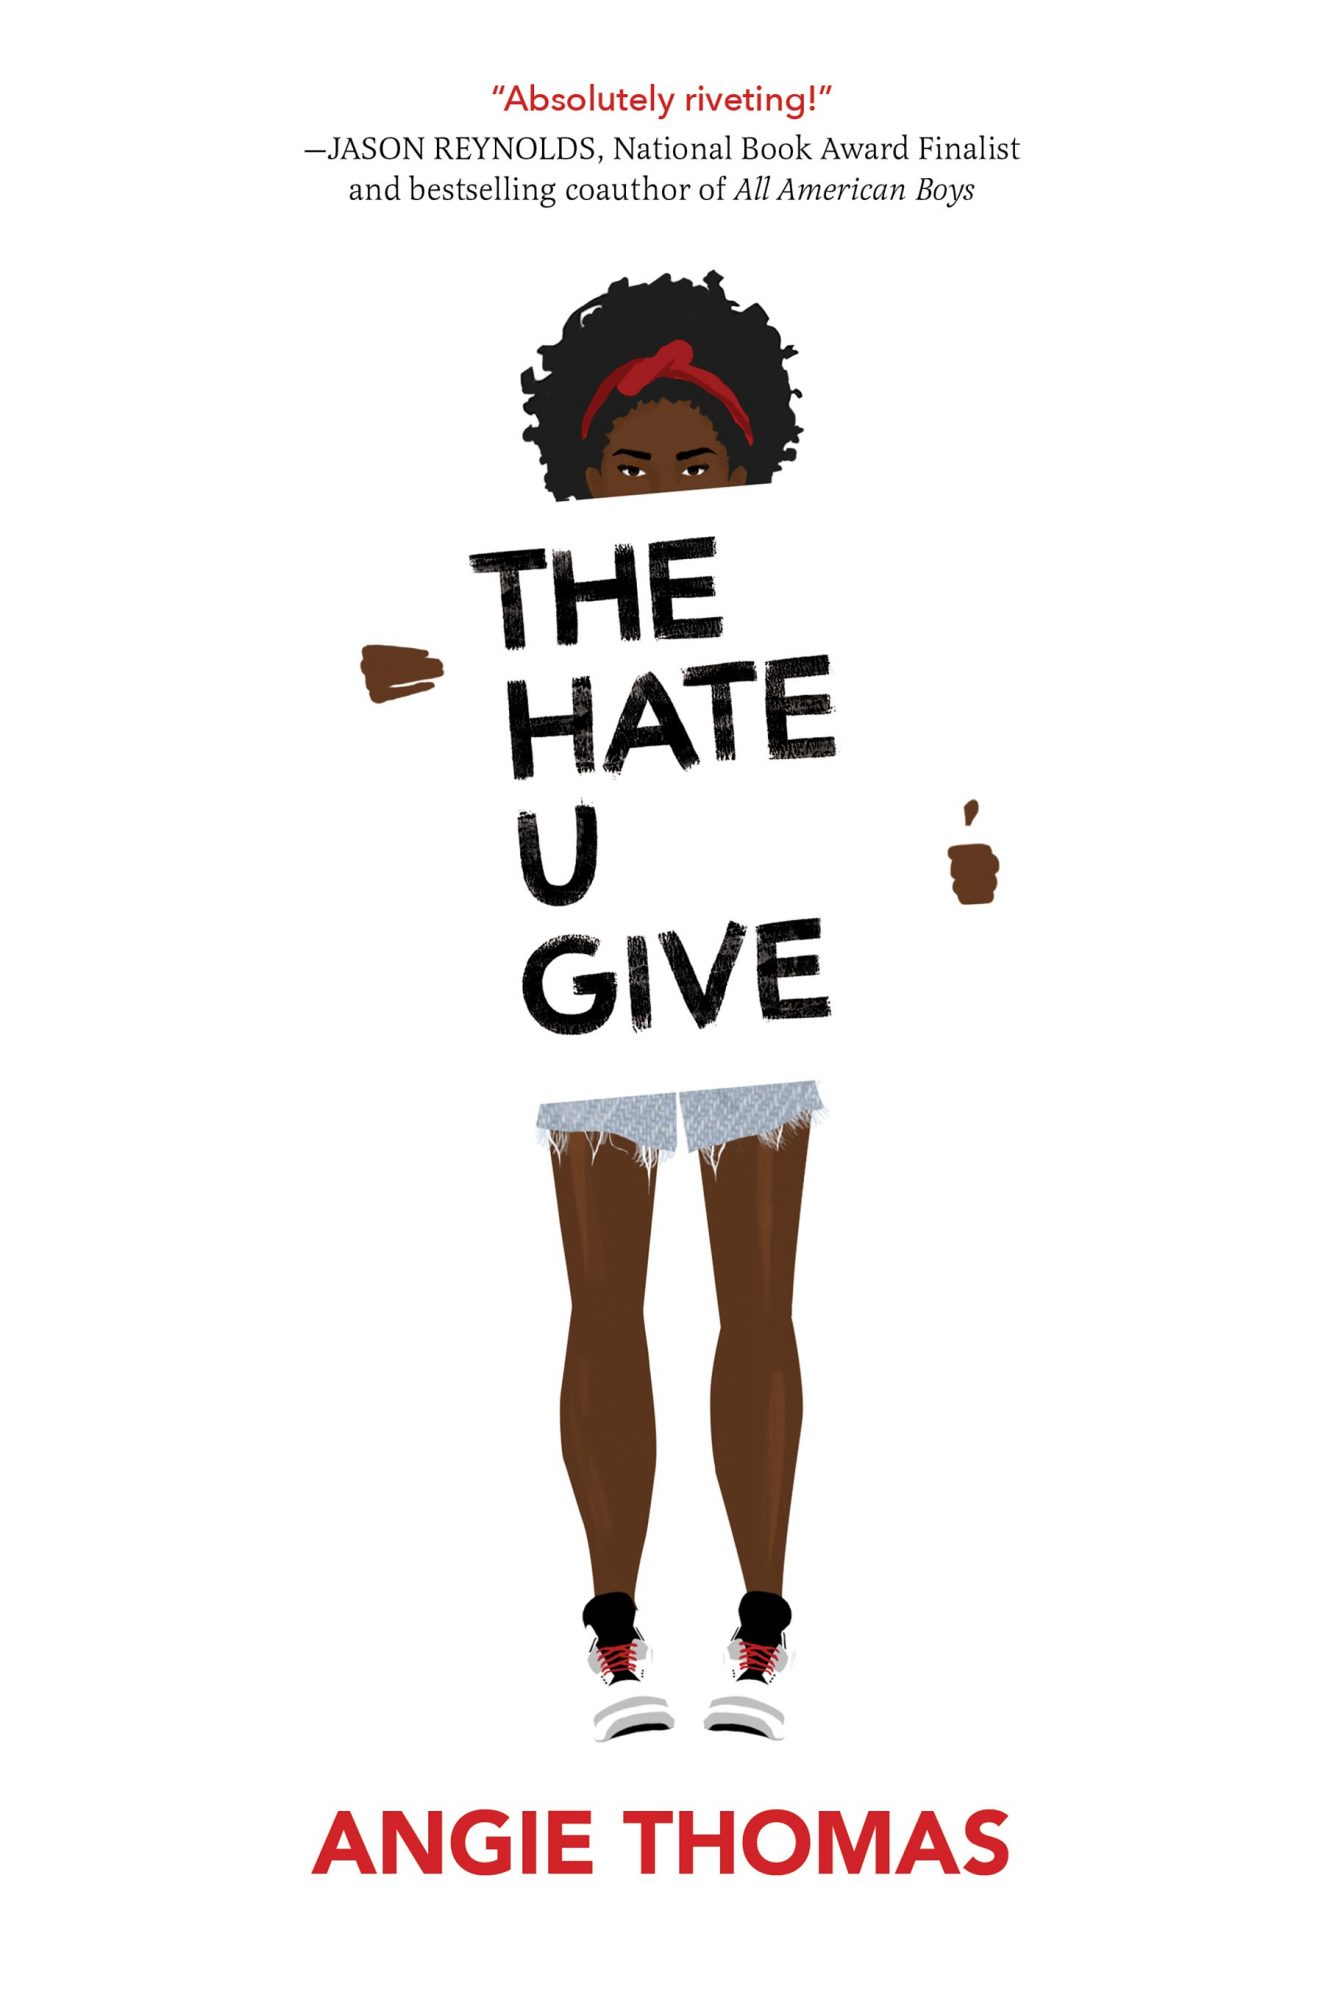 The Hate U Giveby Angie Thomas CR: HarperCollins